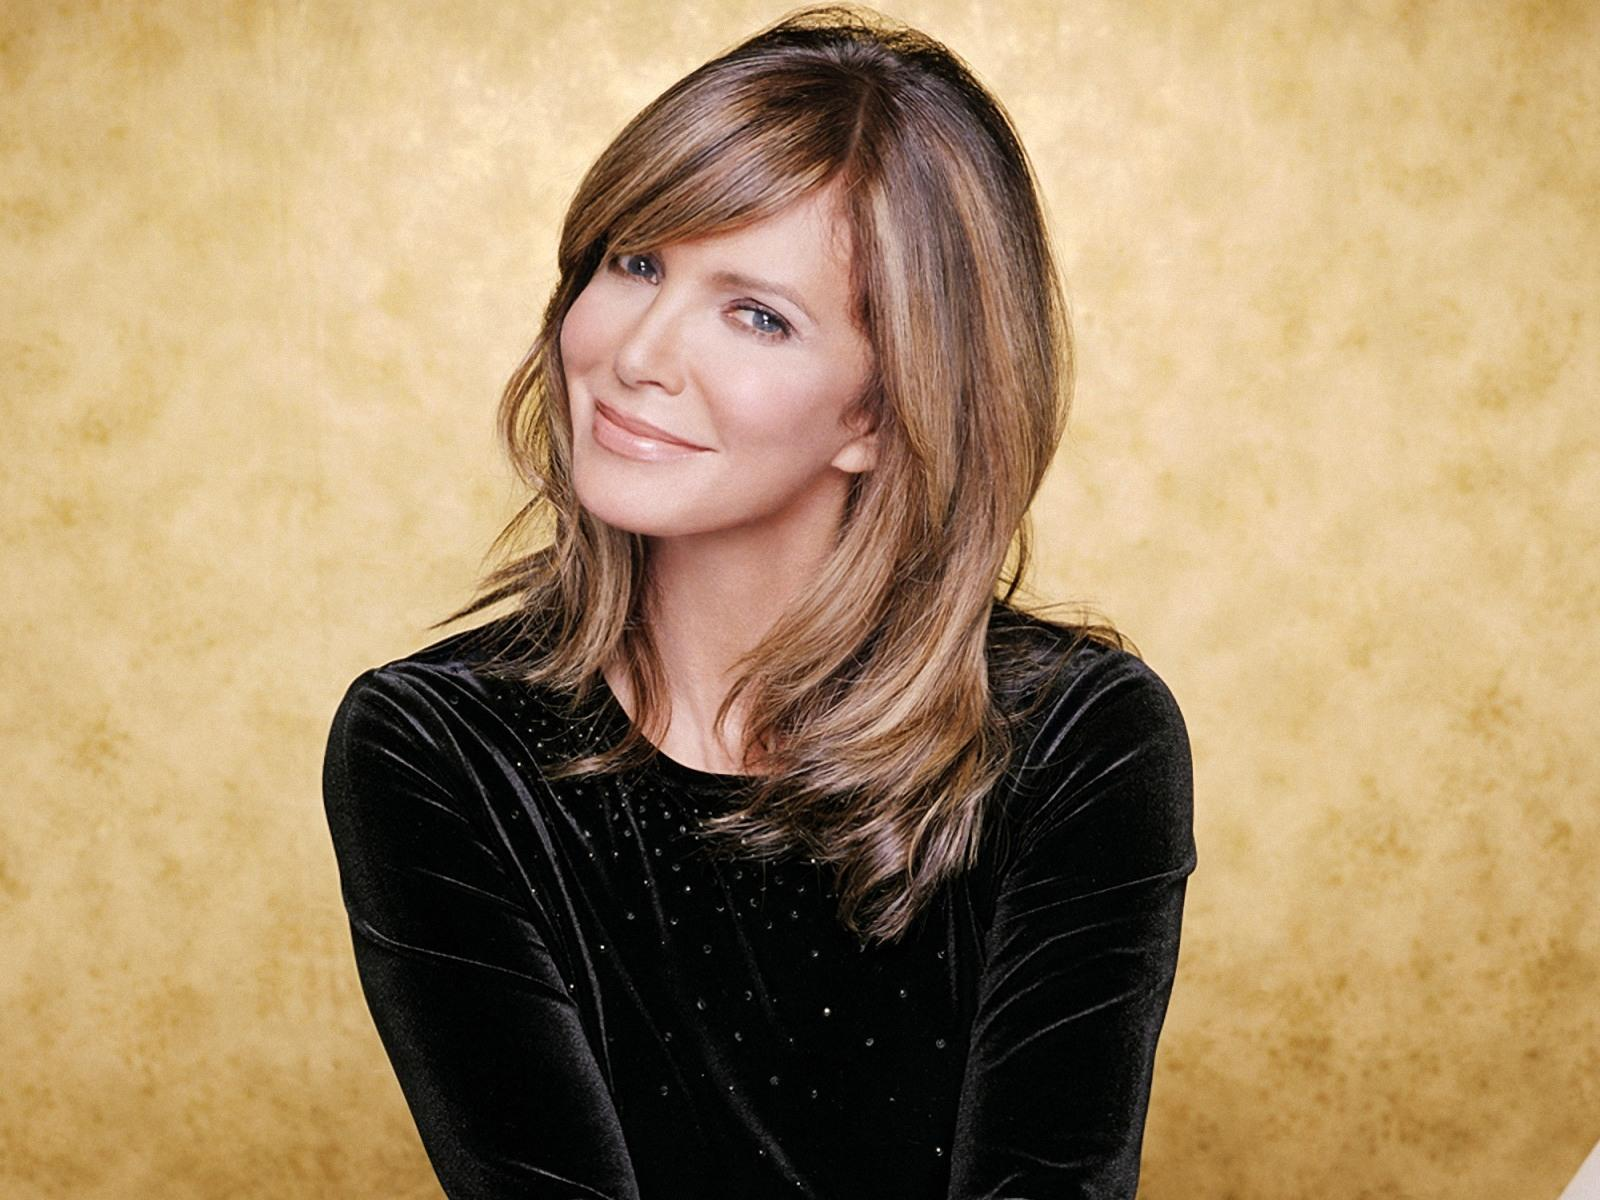 1600x1200 - Jaclyn Smith Wallpapers 19